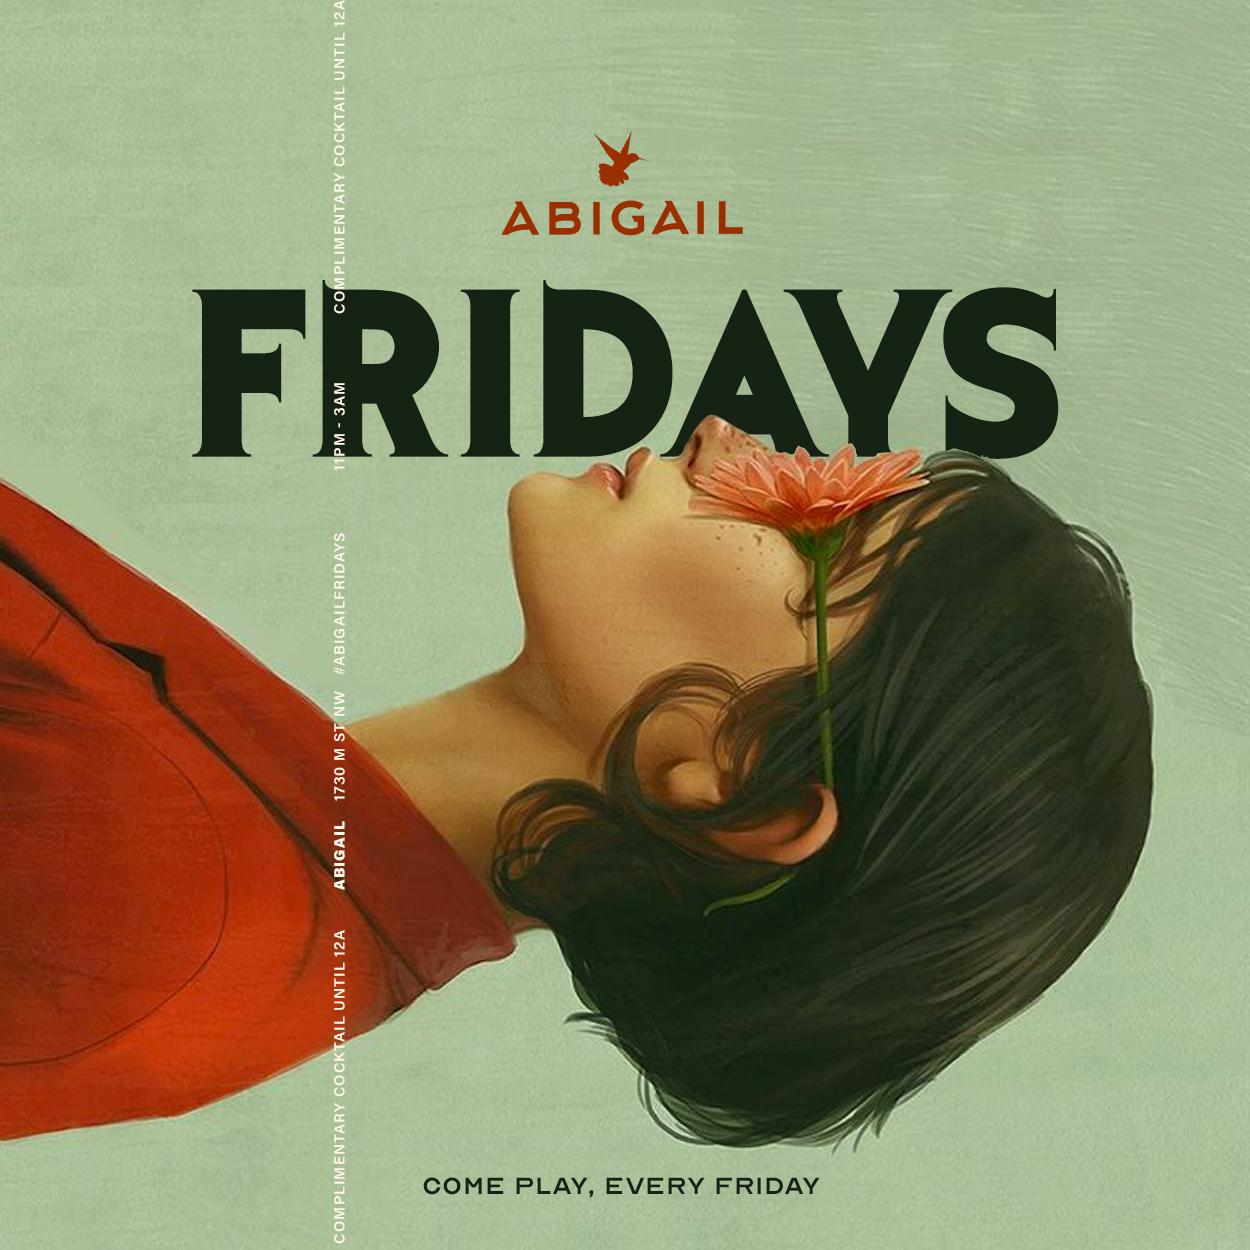 ABIGAIL FRIDAYS || HIP-HOP FRIDAYS